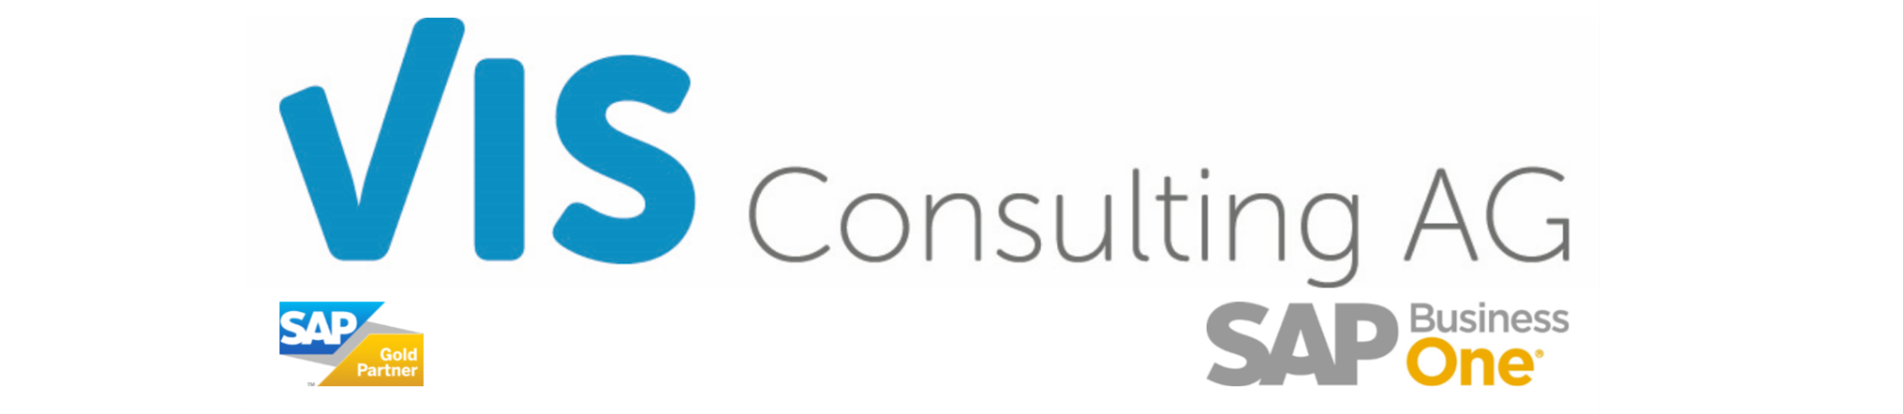 VIS Consulting AG logo